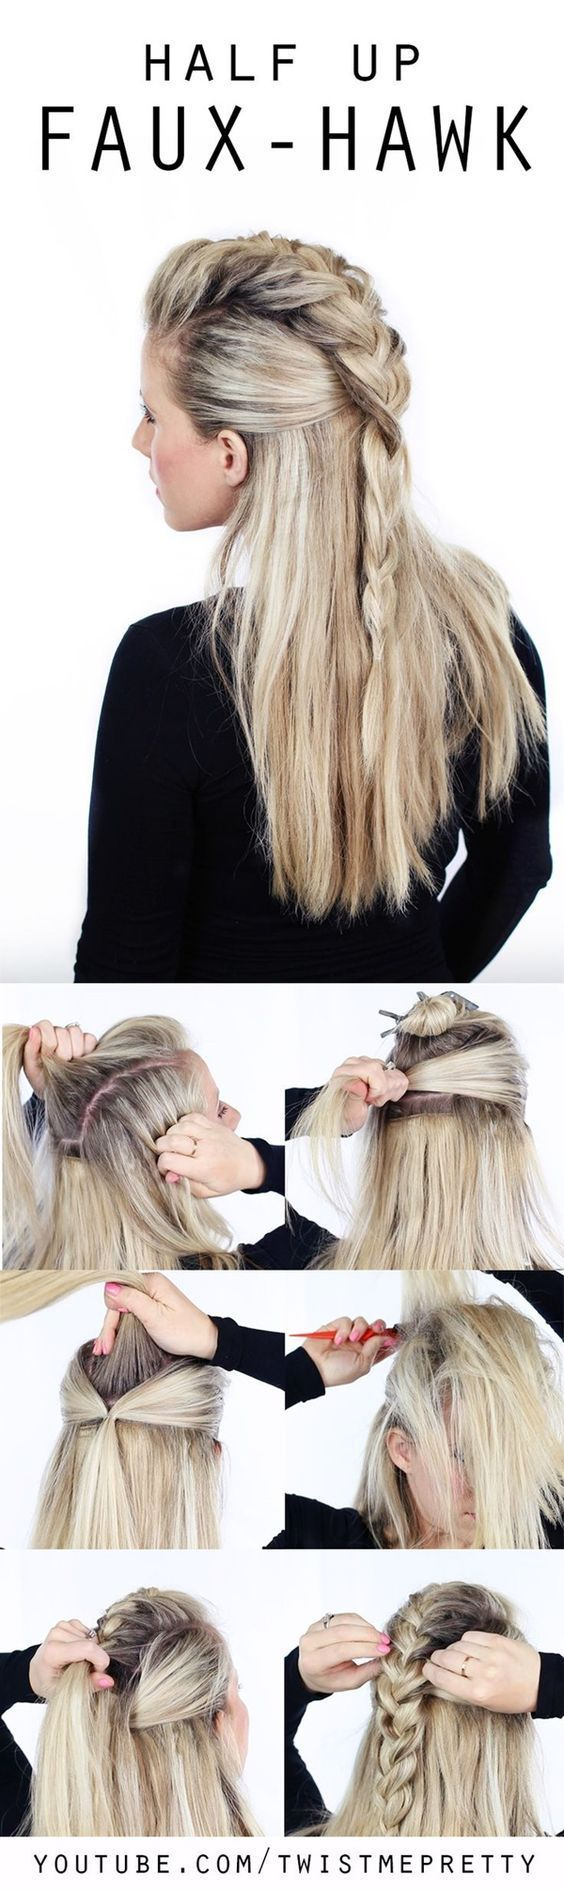 best hairs images on pinterest